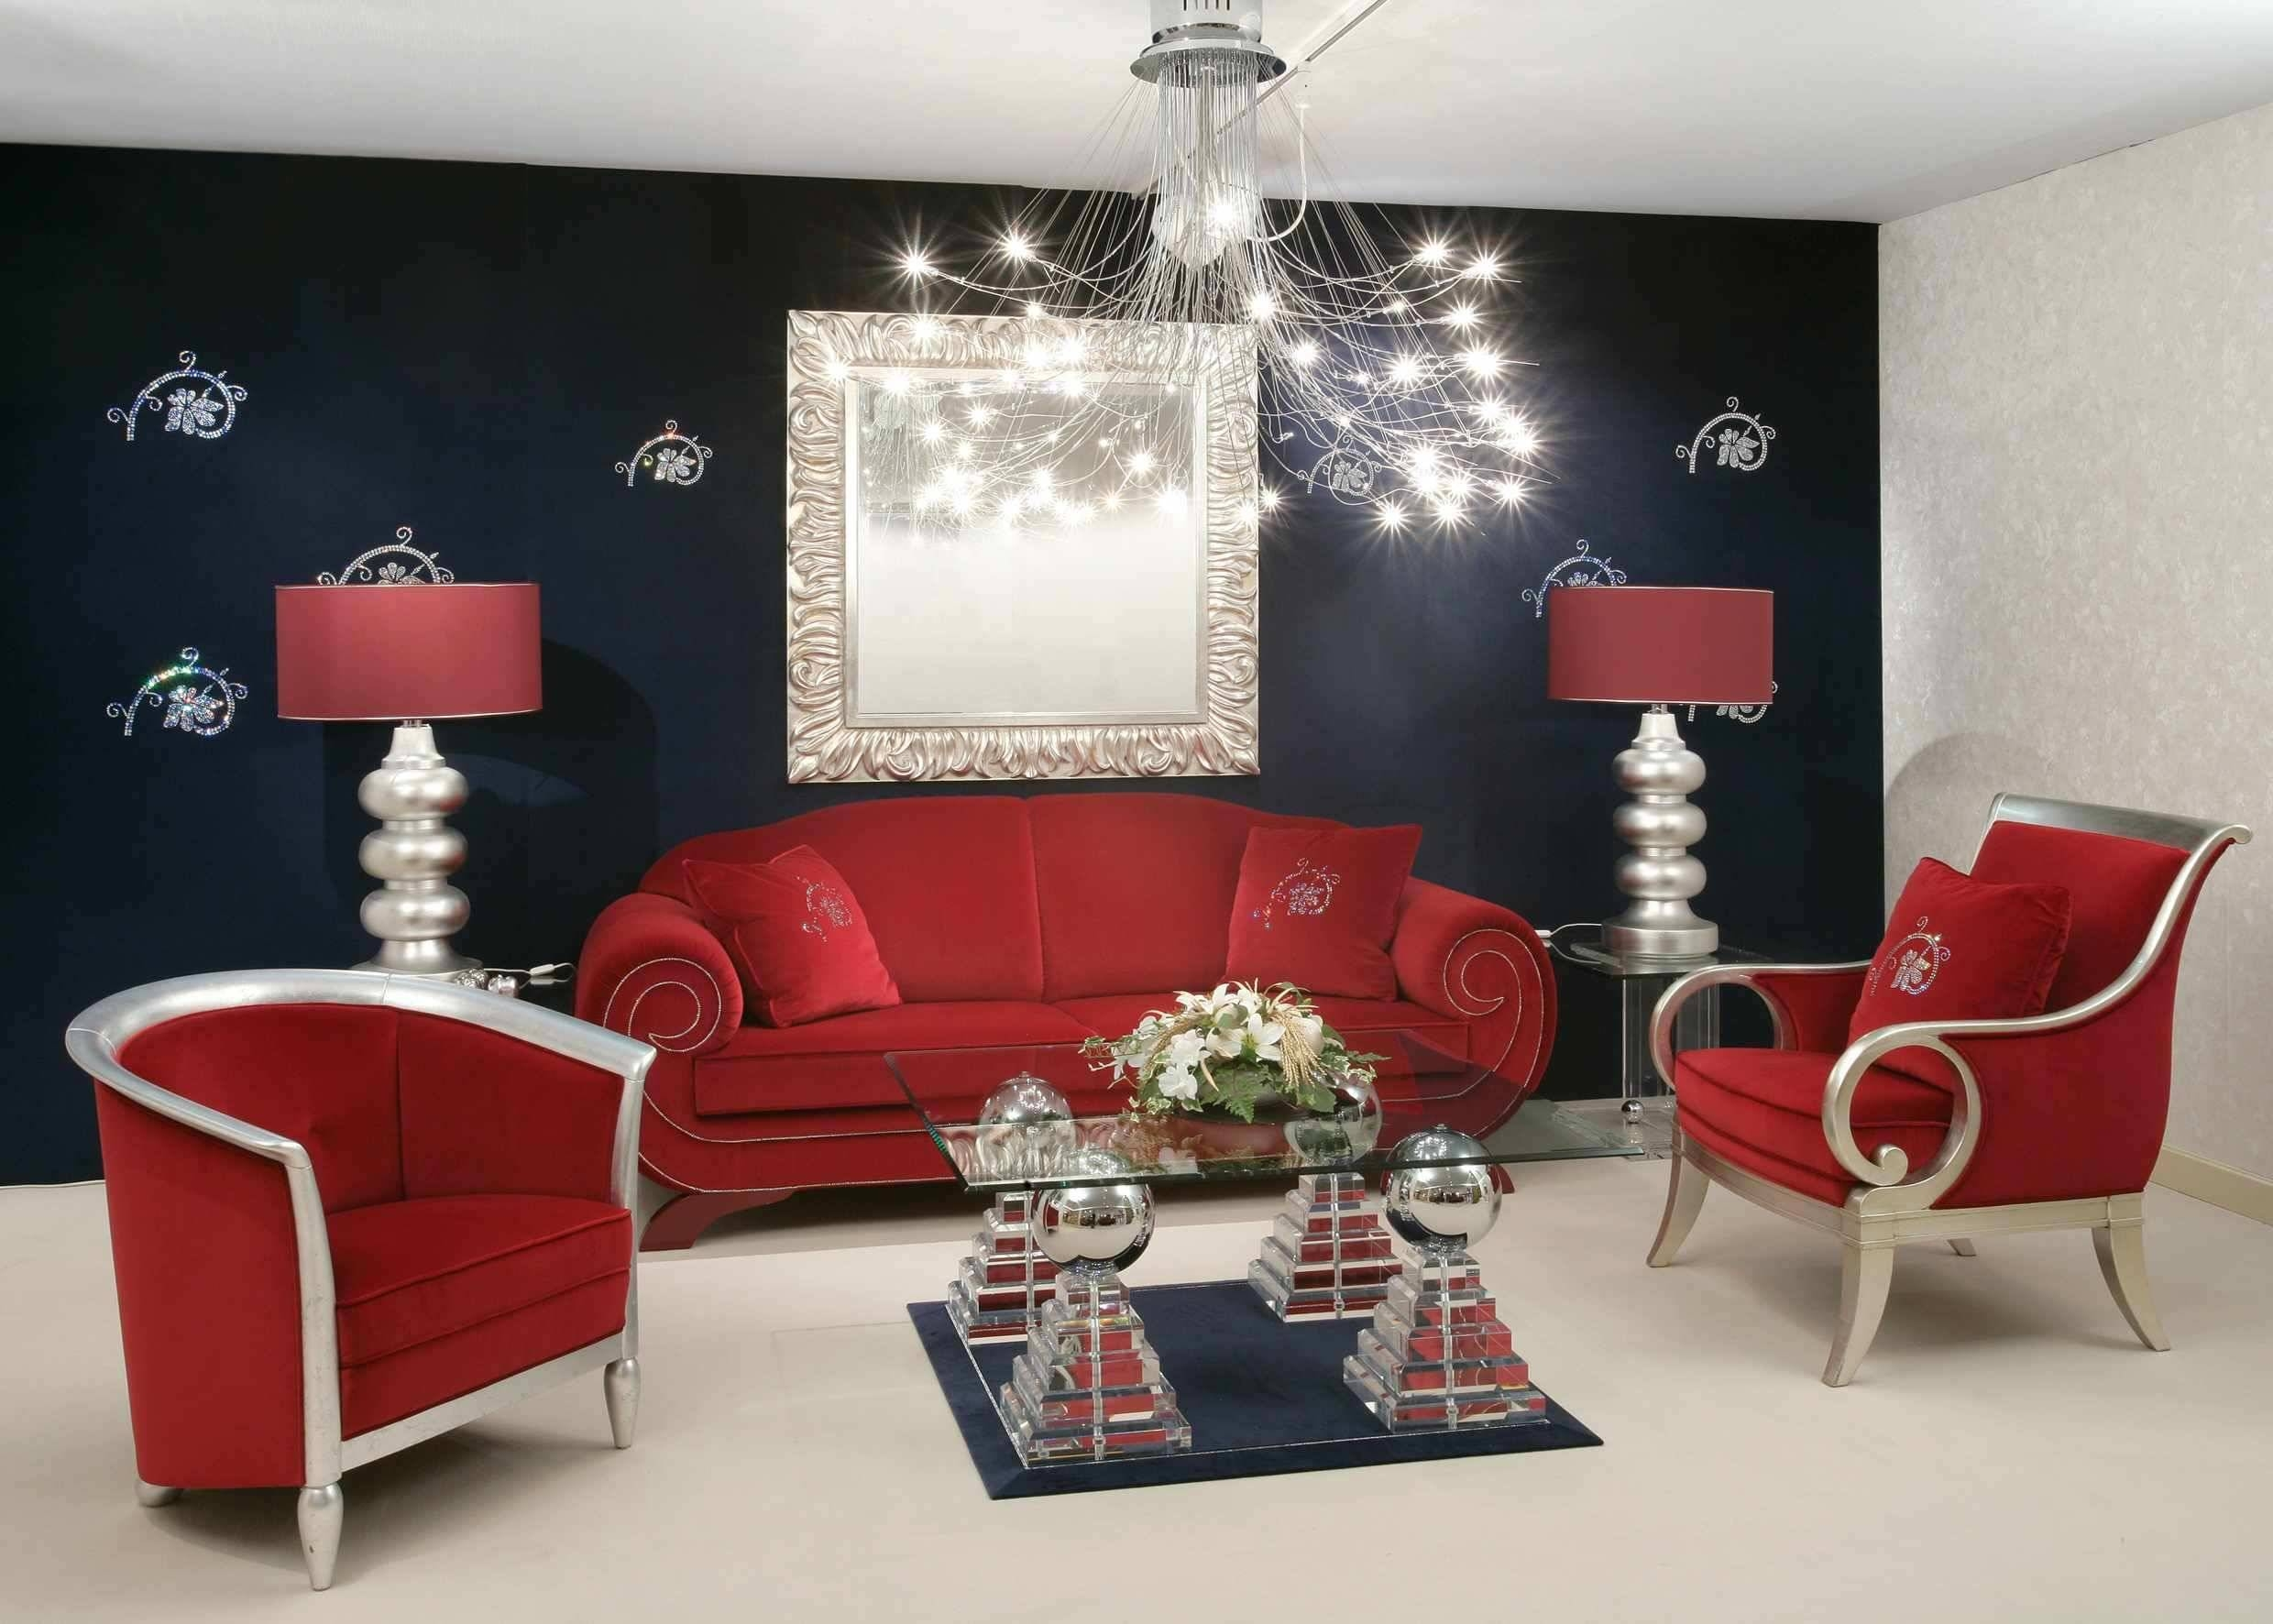 Enchanting Home Decor Ideas For Small Living Room With Red Sofa within Red Sofa Chairs (Image 7 of 30)